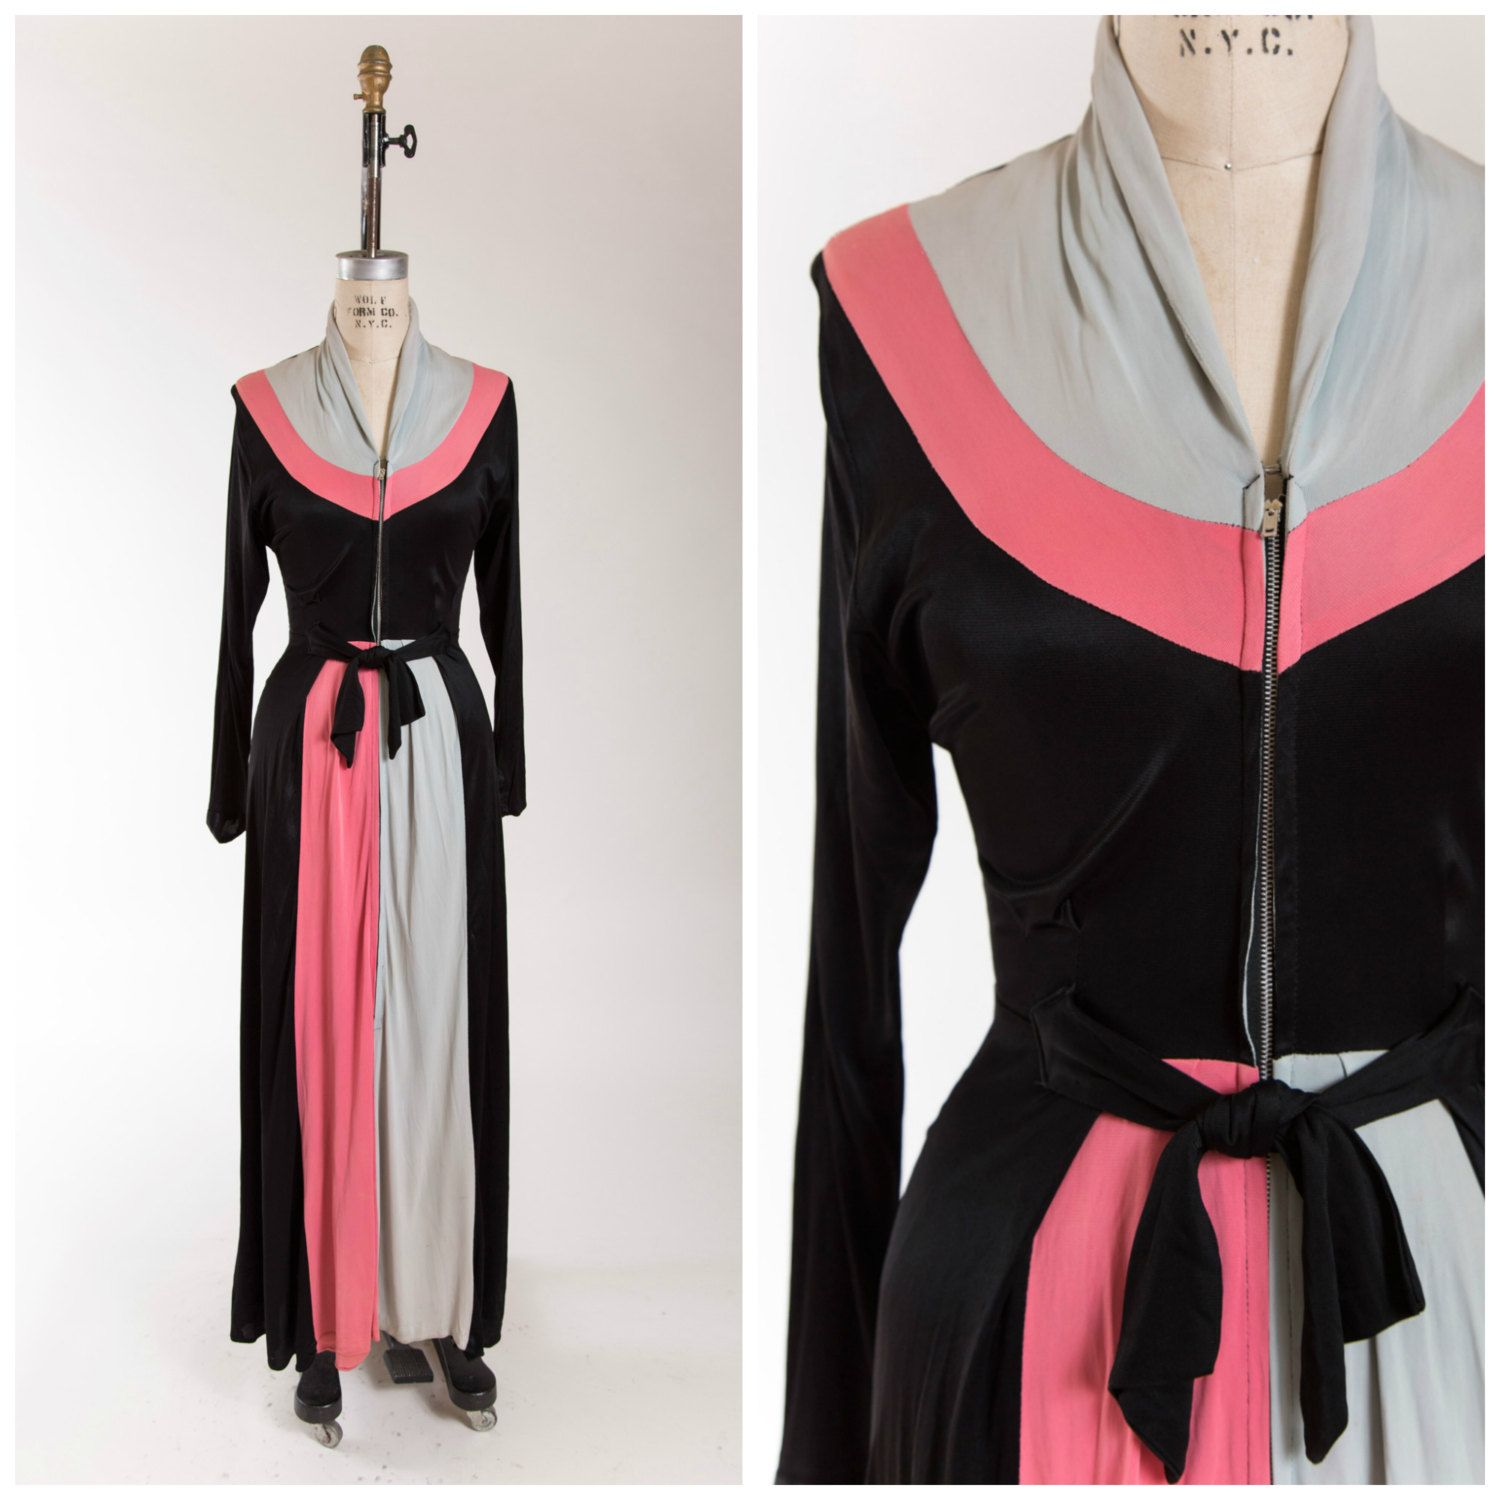 1940s Dressing Gown: Vintage 1940s Dressing Gown Color Block Jersey Dress 40s